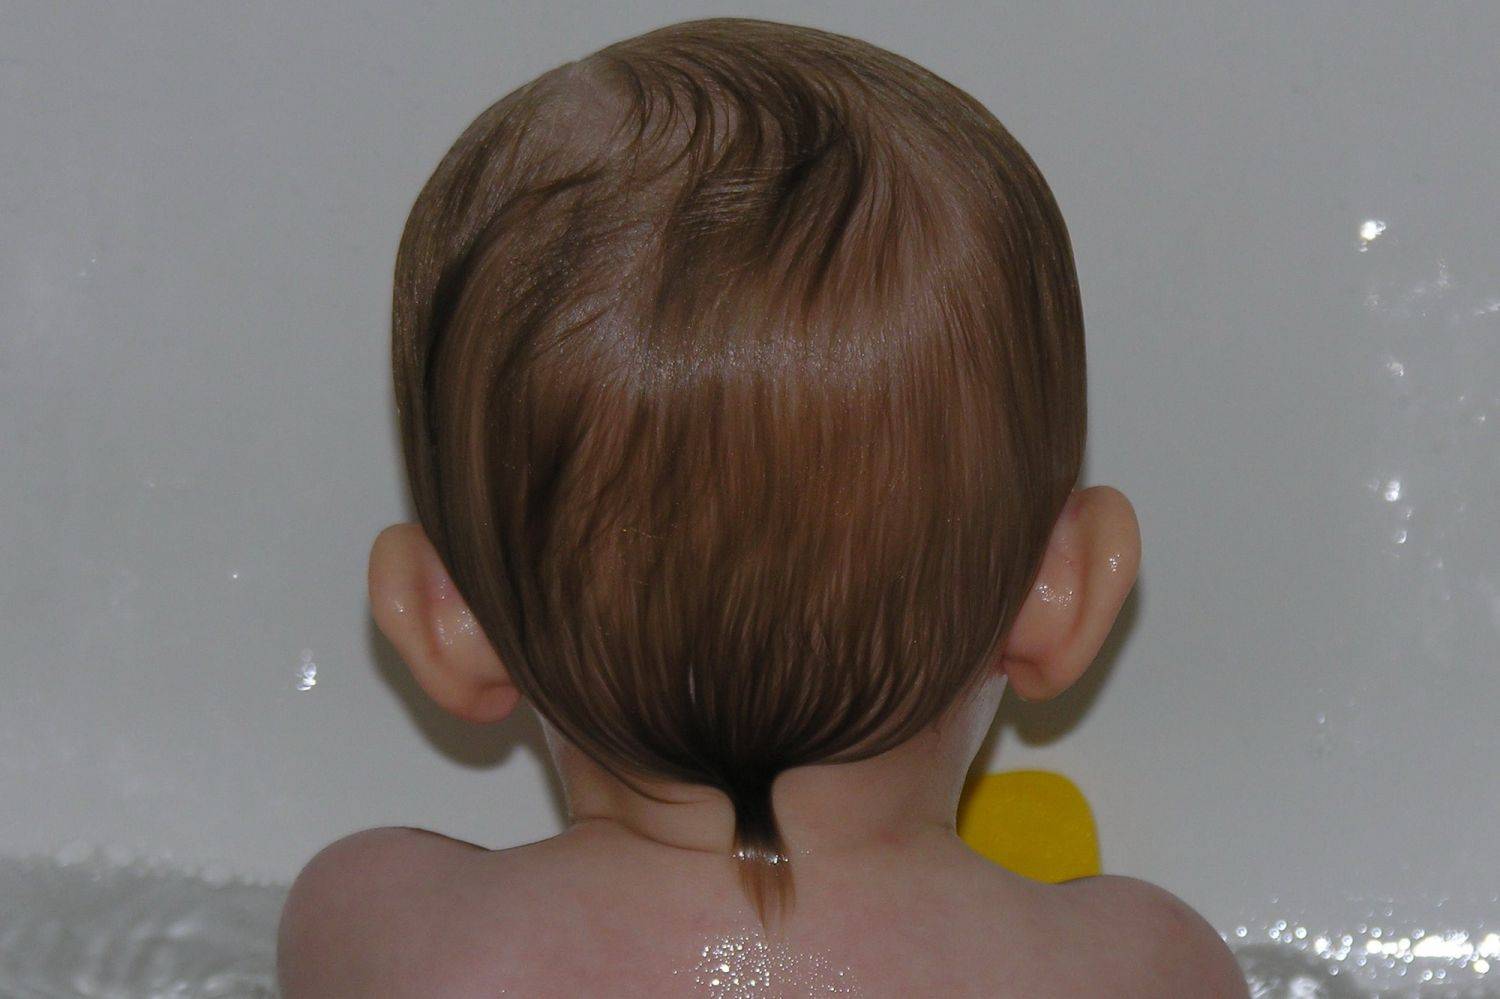 Rat Tail Hair Style: Annelise's Blog » Just For Fun